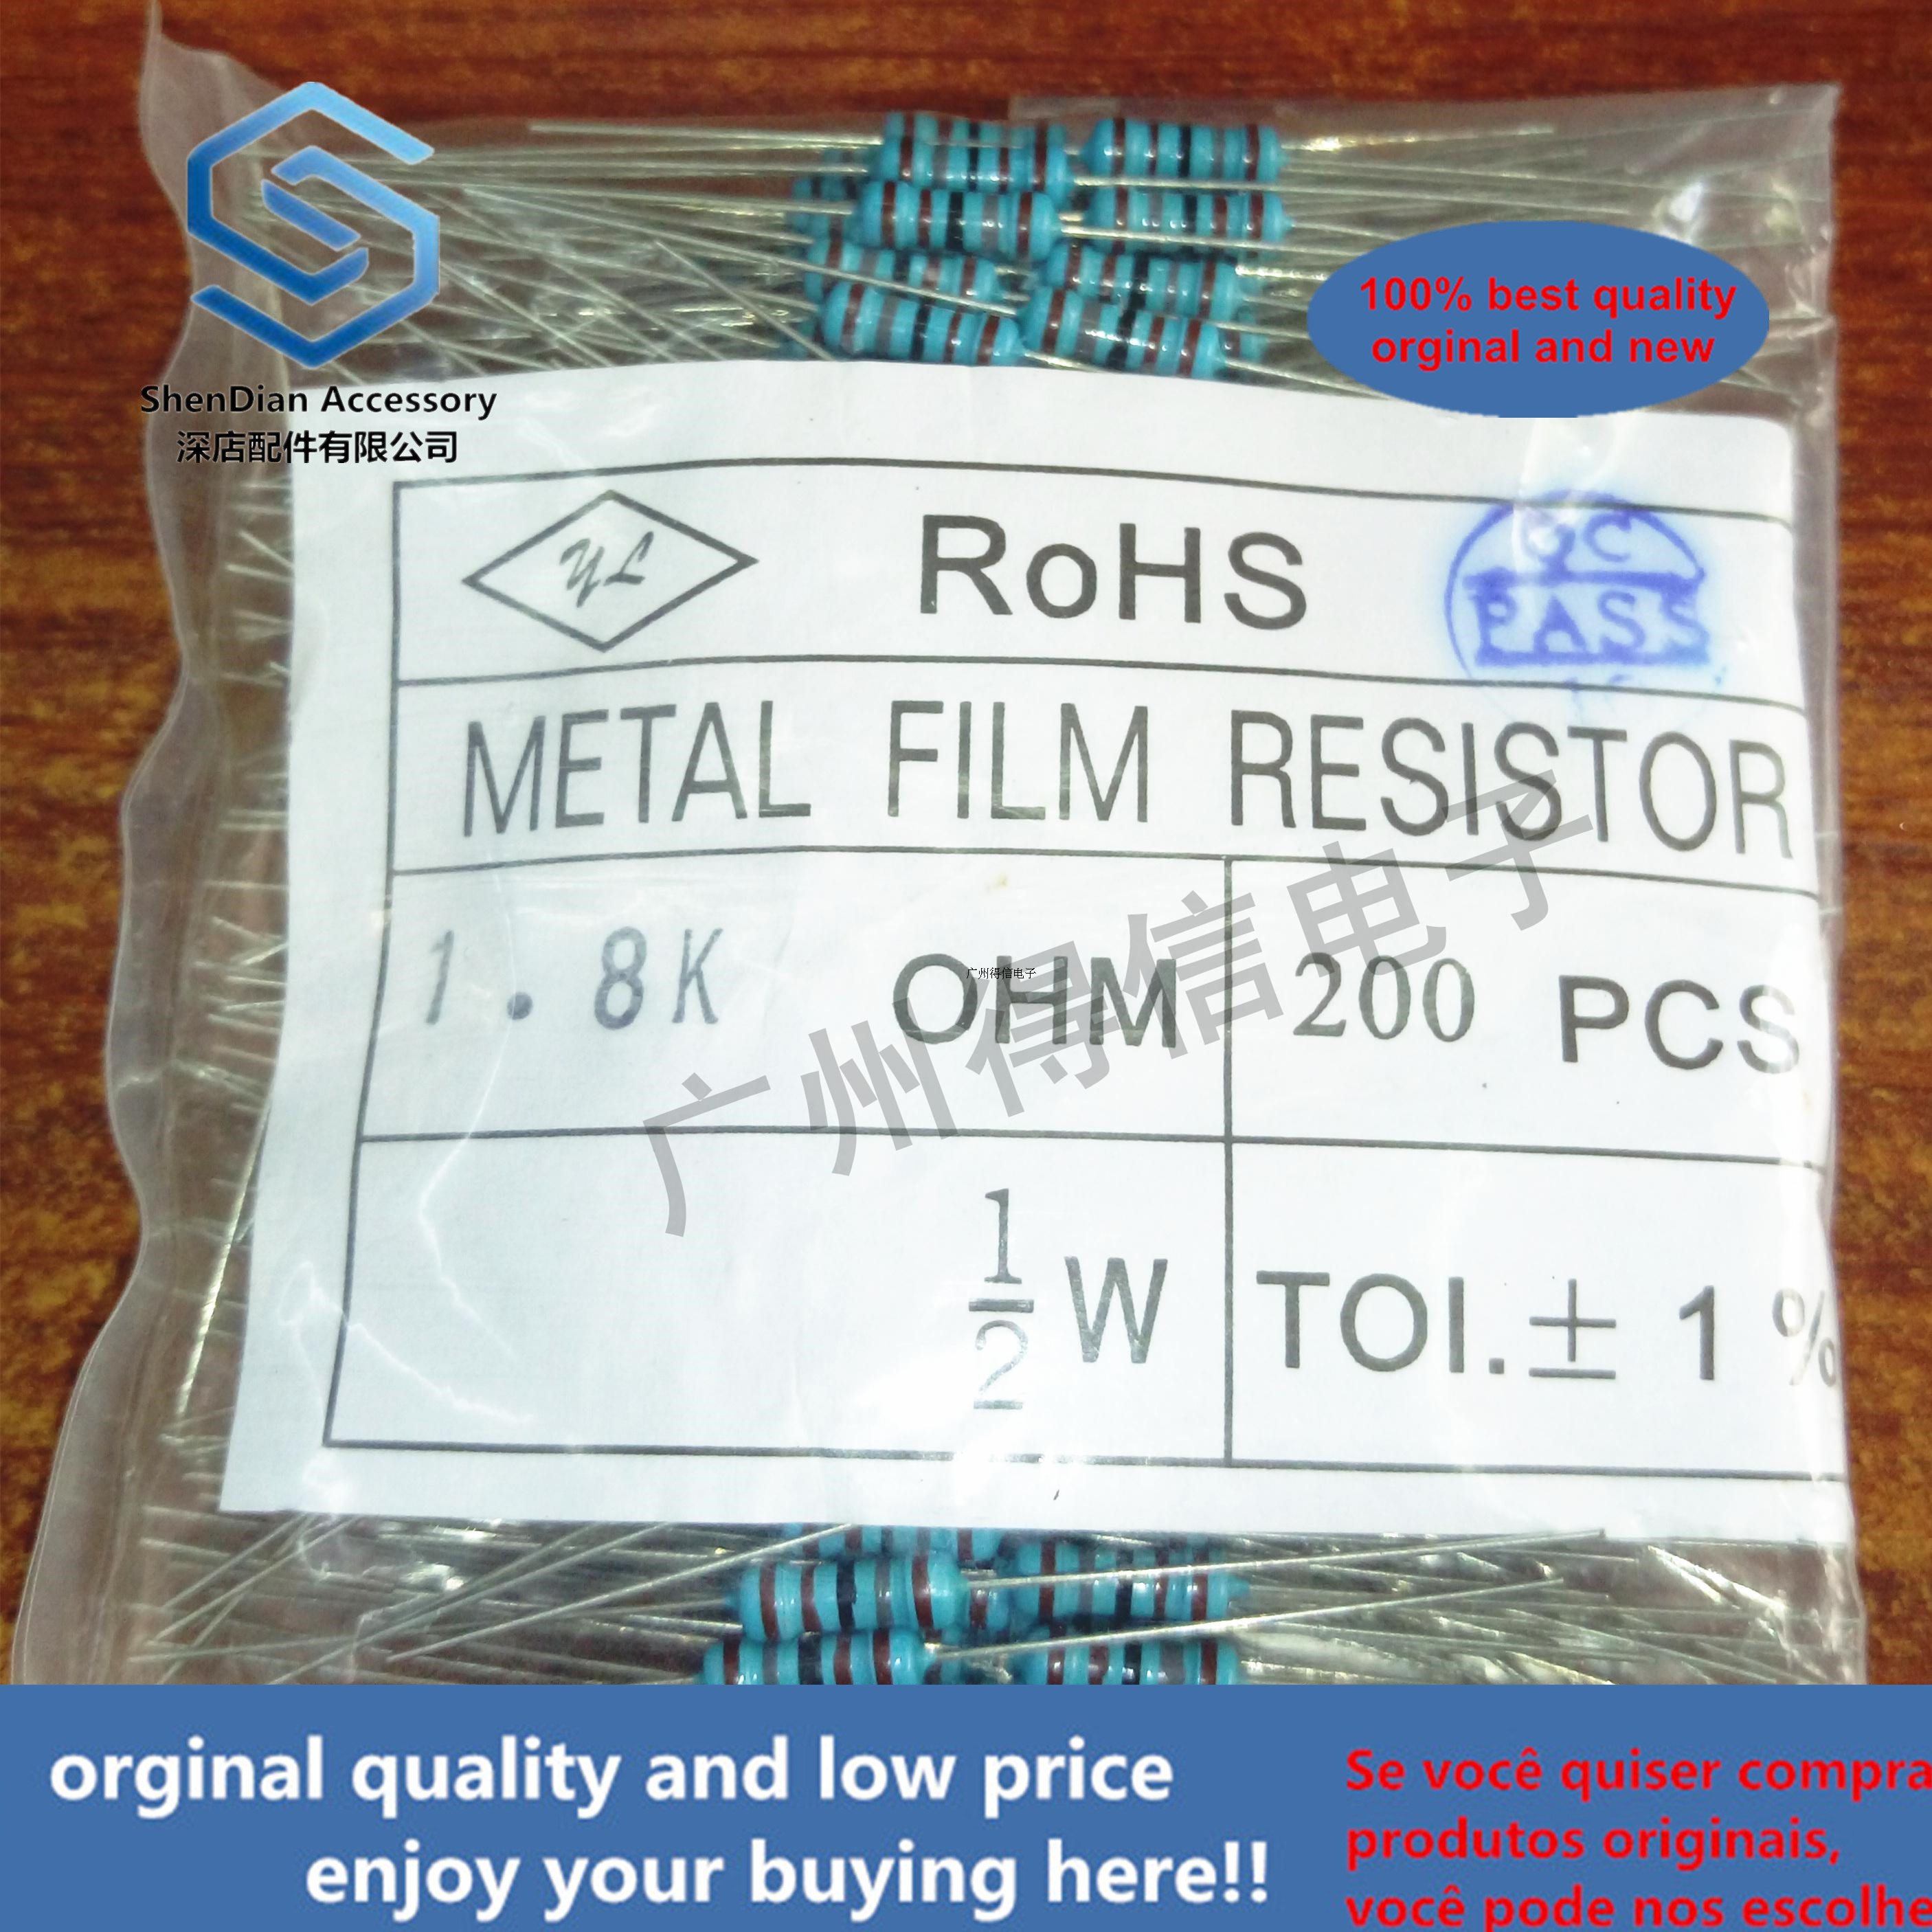 200pcs 1 / 2W 300R 300 Euro 1% Brand New Metal Film Iron Feet Resistor Bag 200 Pcs Per Pack